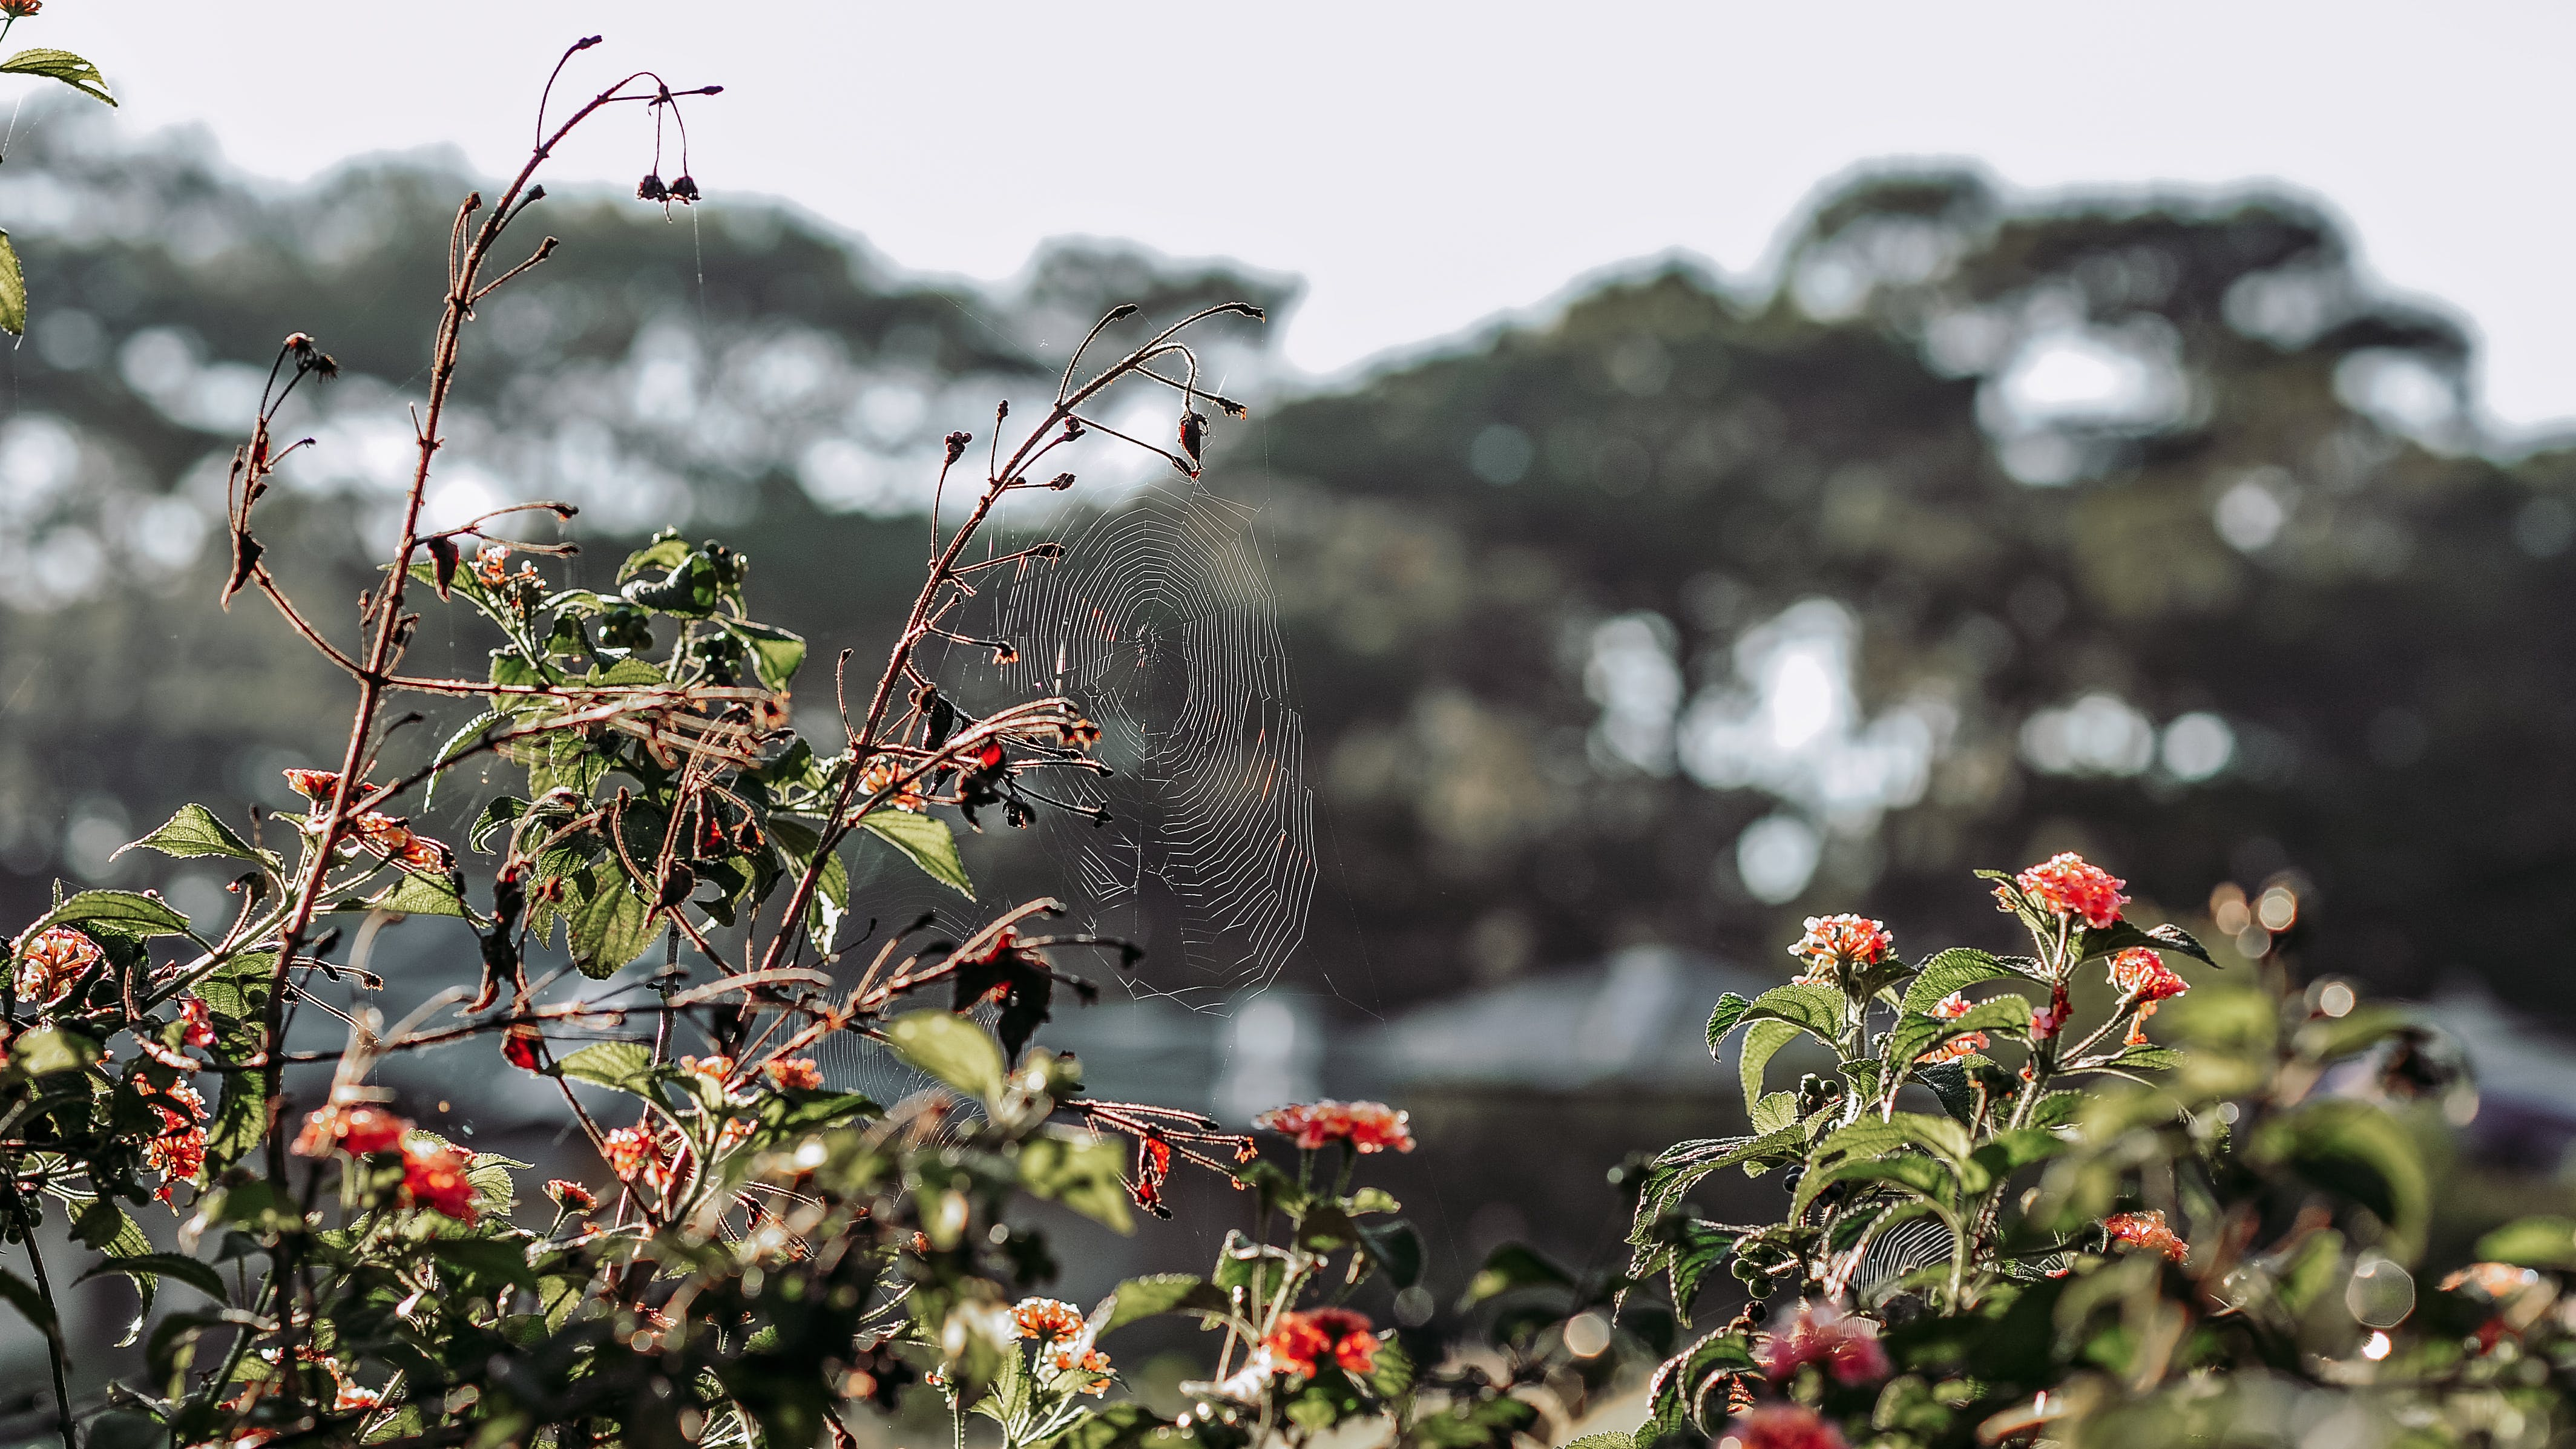 Selective Focus of Spider-web on Green Leaf Plant